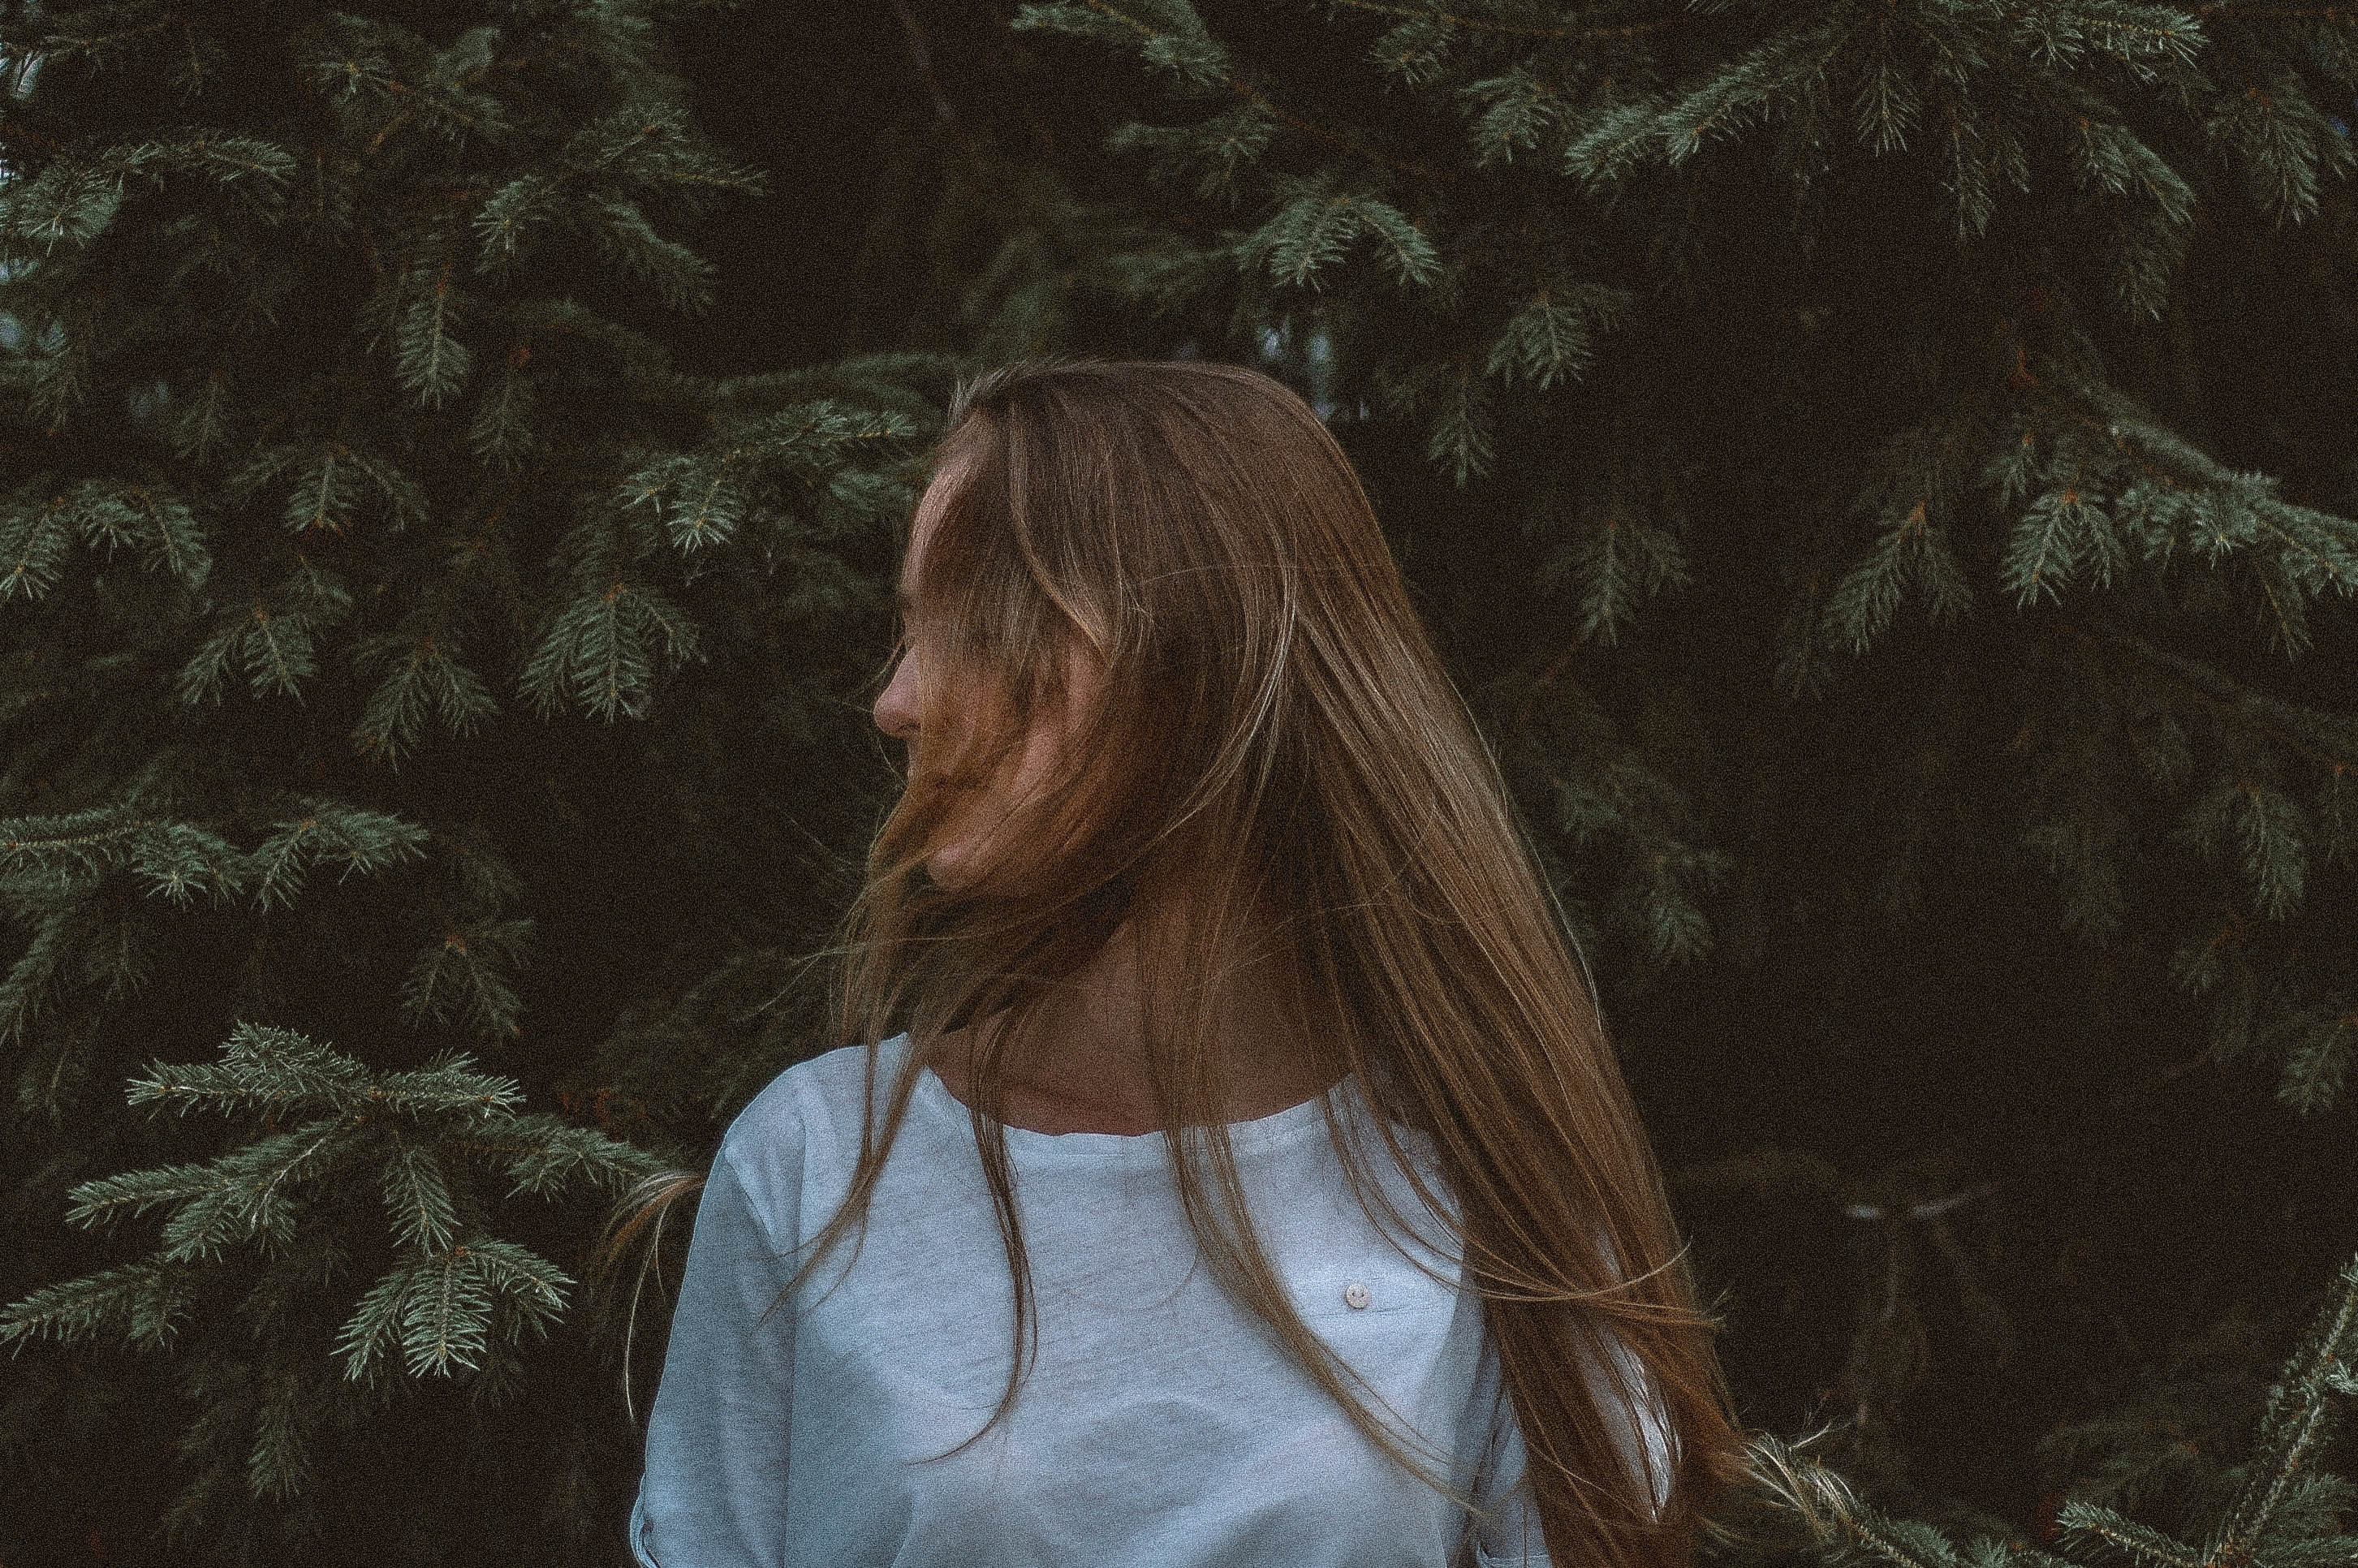 woman wearing white shirt near tree